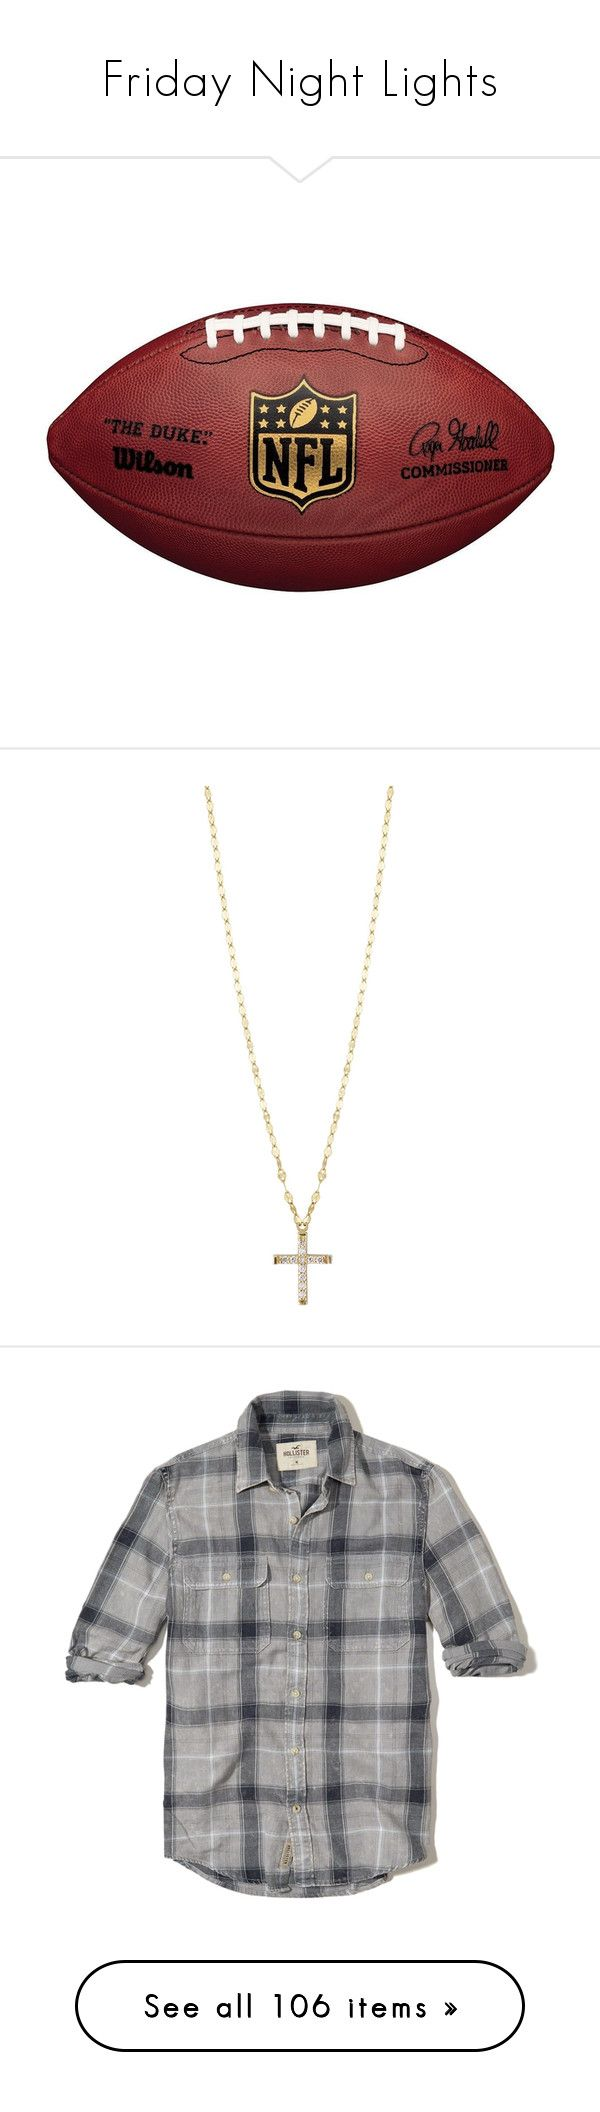 """Friday Night Lights"" by namelessginger ❤ liked on Polyvore featuring football, jewelry, necklaces, gold, jewelry necklaces, 14 karat gold necklace, diamond cross necklace, 14k necklace, cross pendant necklace and 14 karat gold cross necklace"